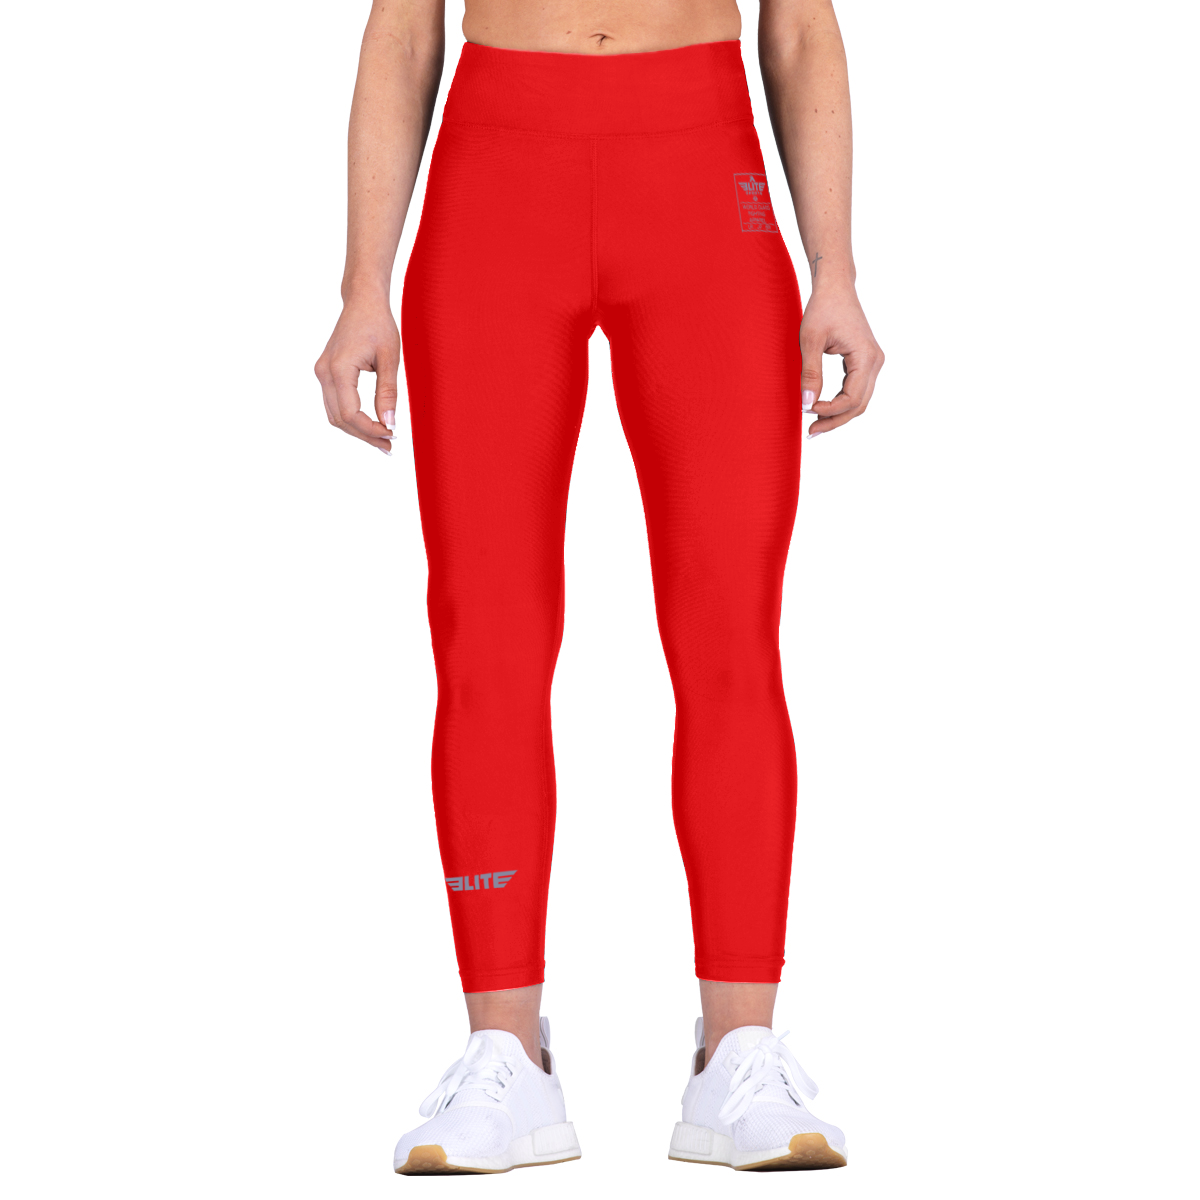 Elite Sports Red Women Compression MMA Spat Pants